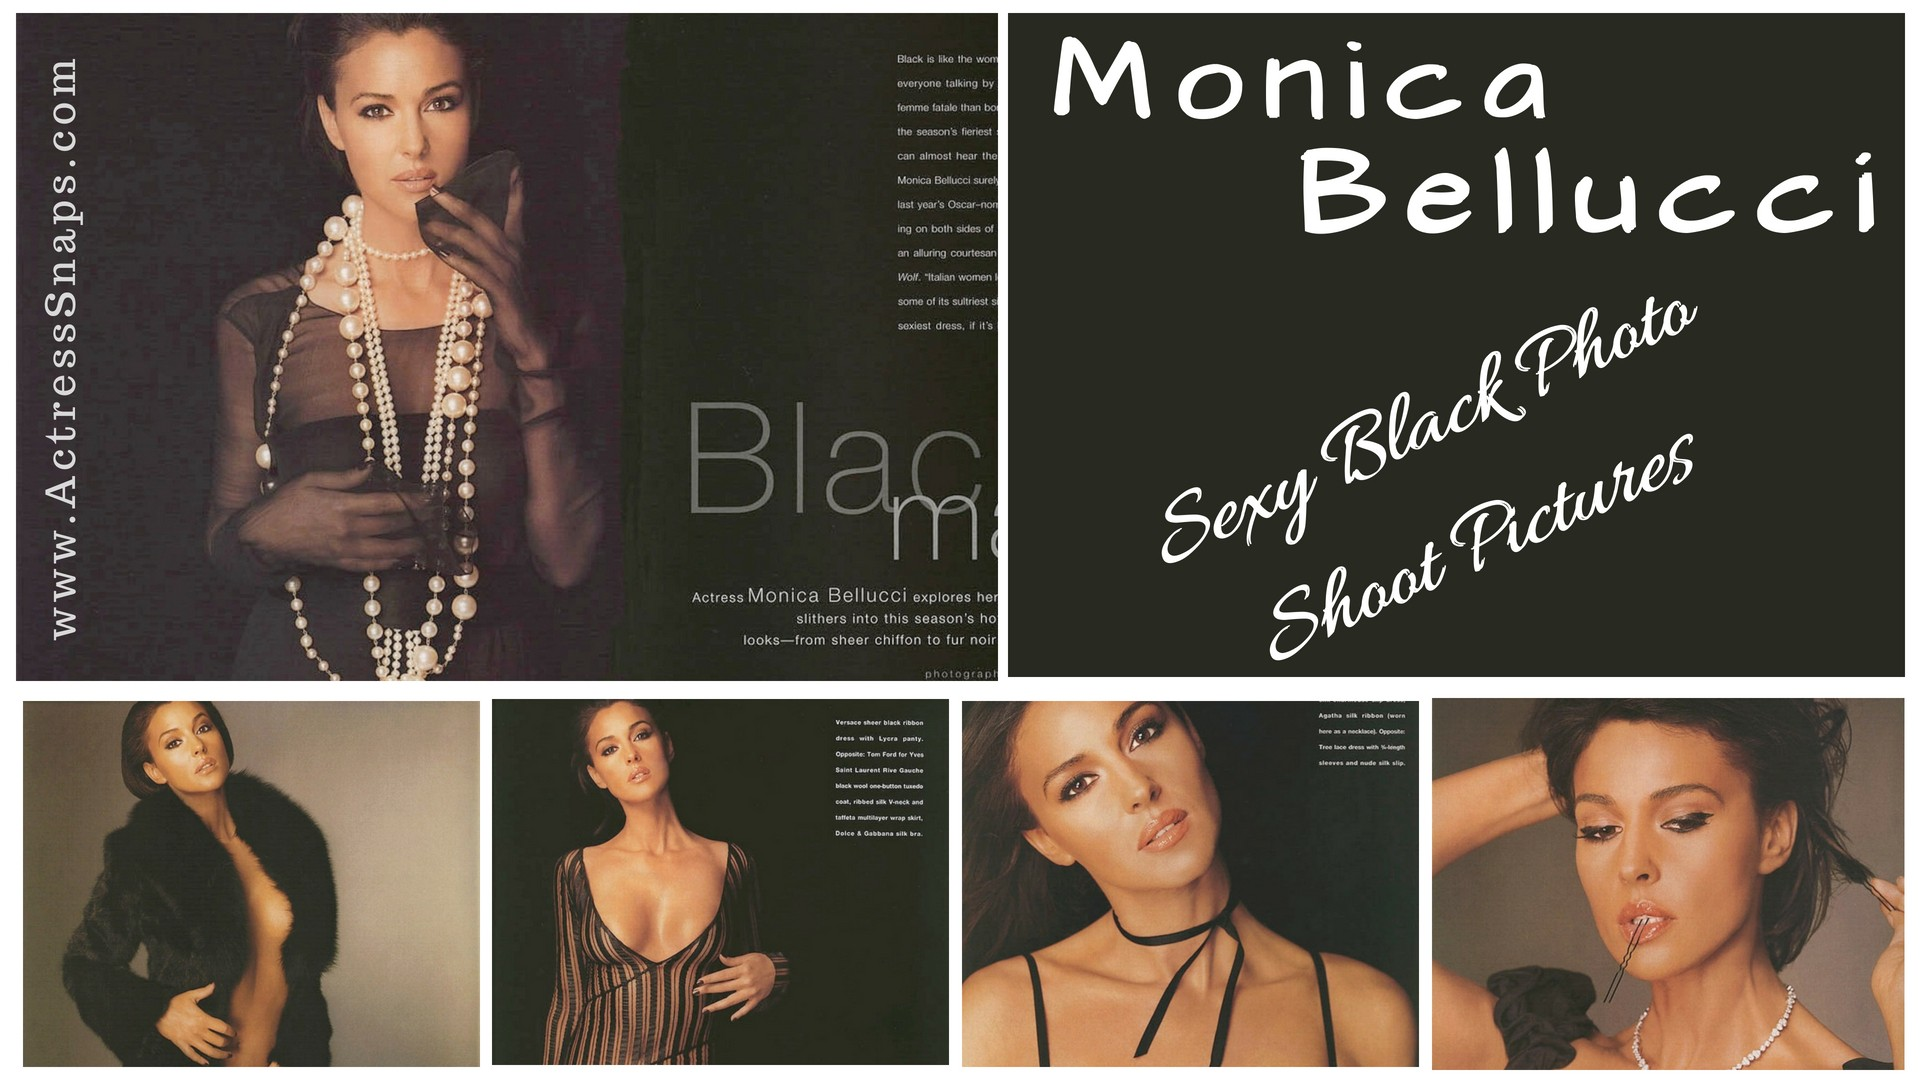 Sexy Monica Bellucci Photo Shoot in Black - Sexy Actress Pictures | Hot Actress Pictures - ActressSnaps.com